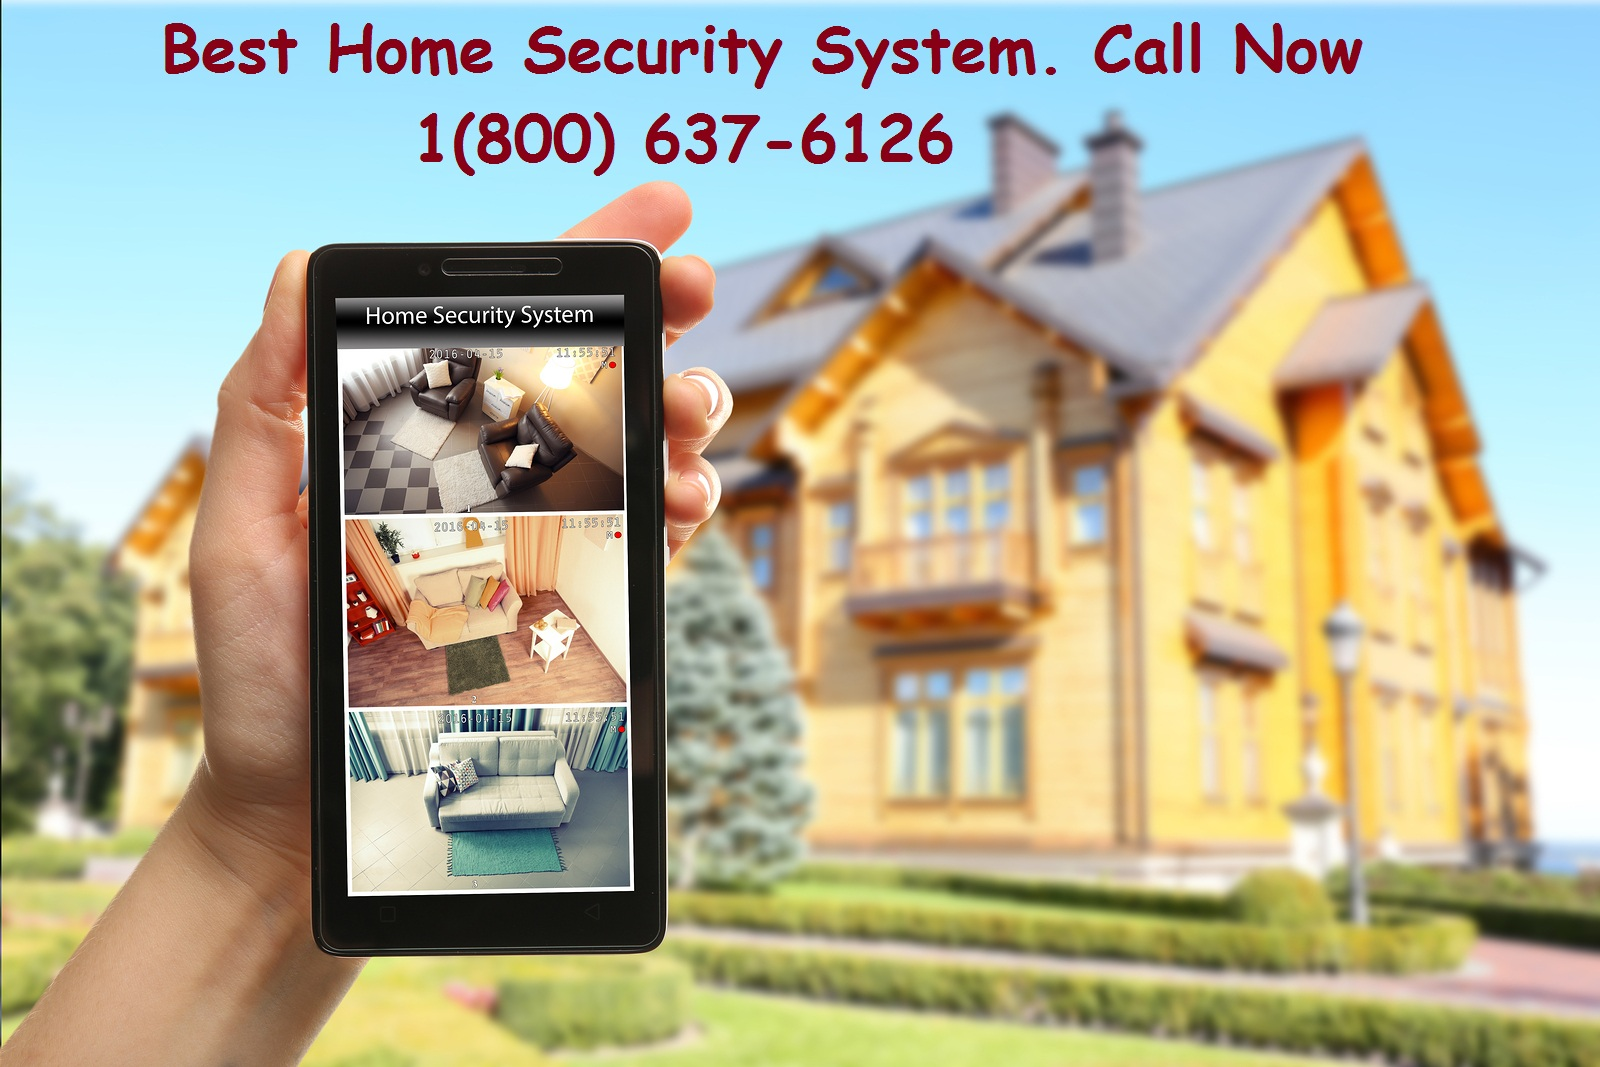 CHECK THE EXCITING OFFERS OF HOME SECURITY 1800-637-6126